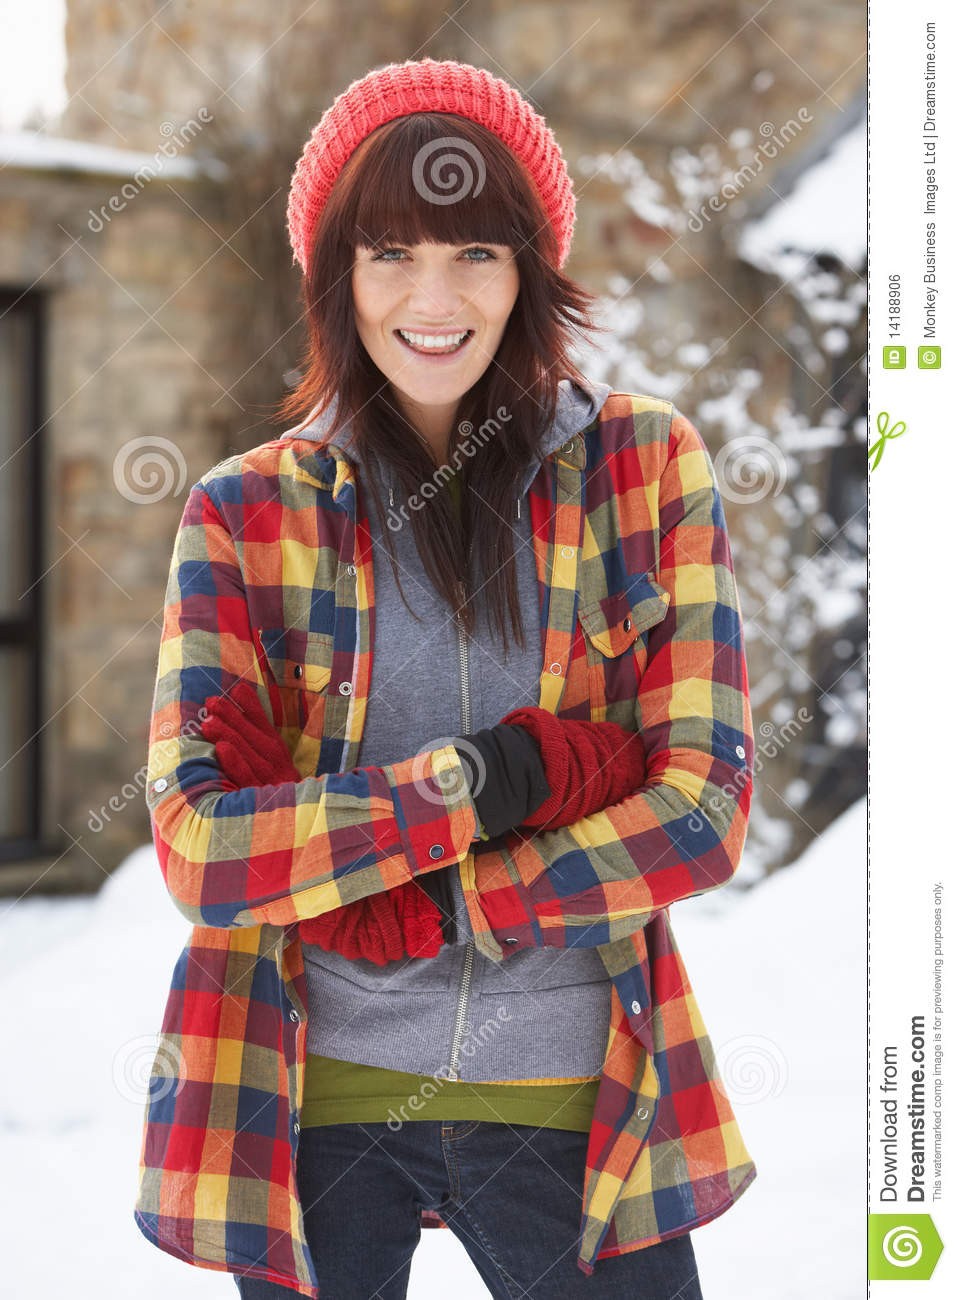 Woman In Snowy Landscape Wearing Warm Clothing